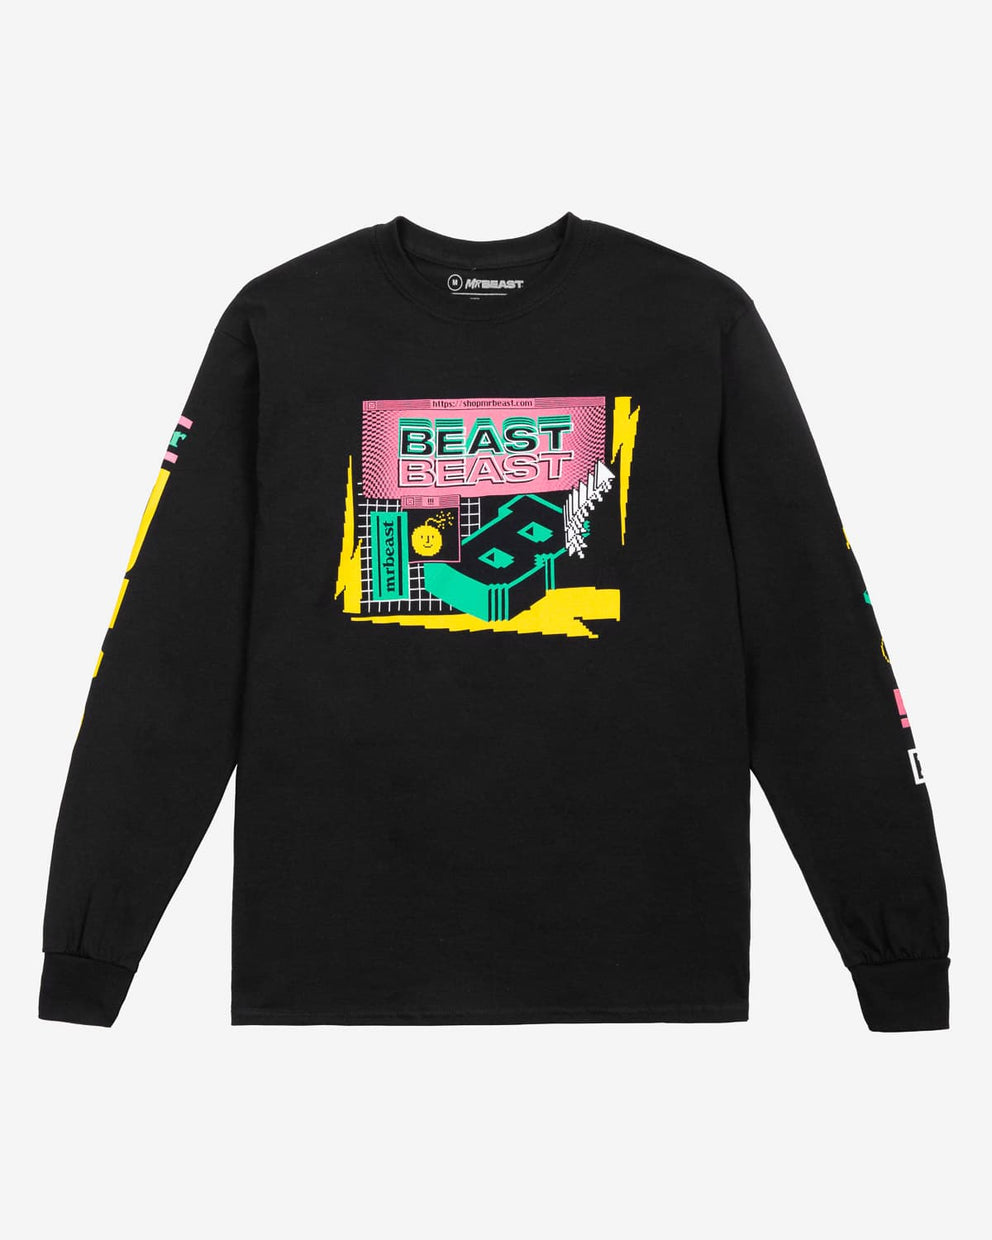 Beast 'Escapism' Long Sleeve Tee - Black